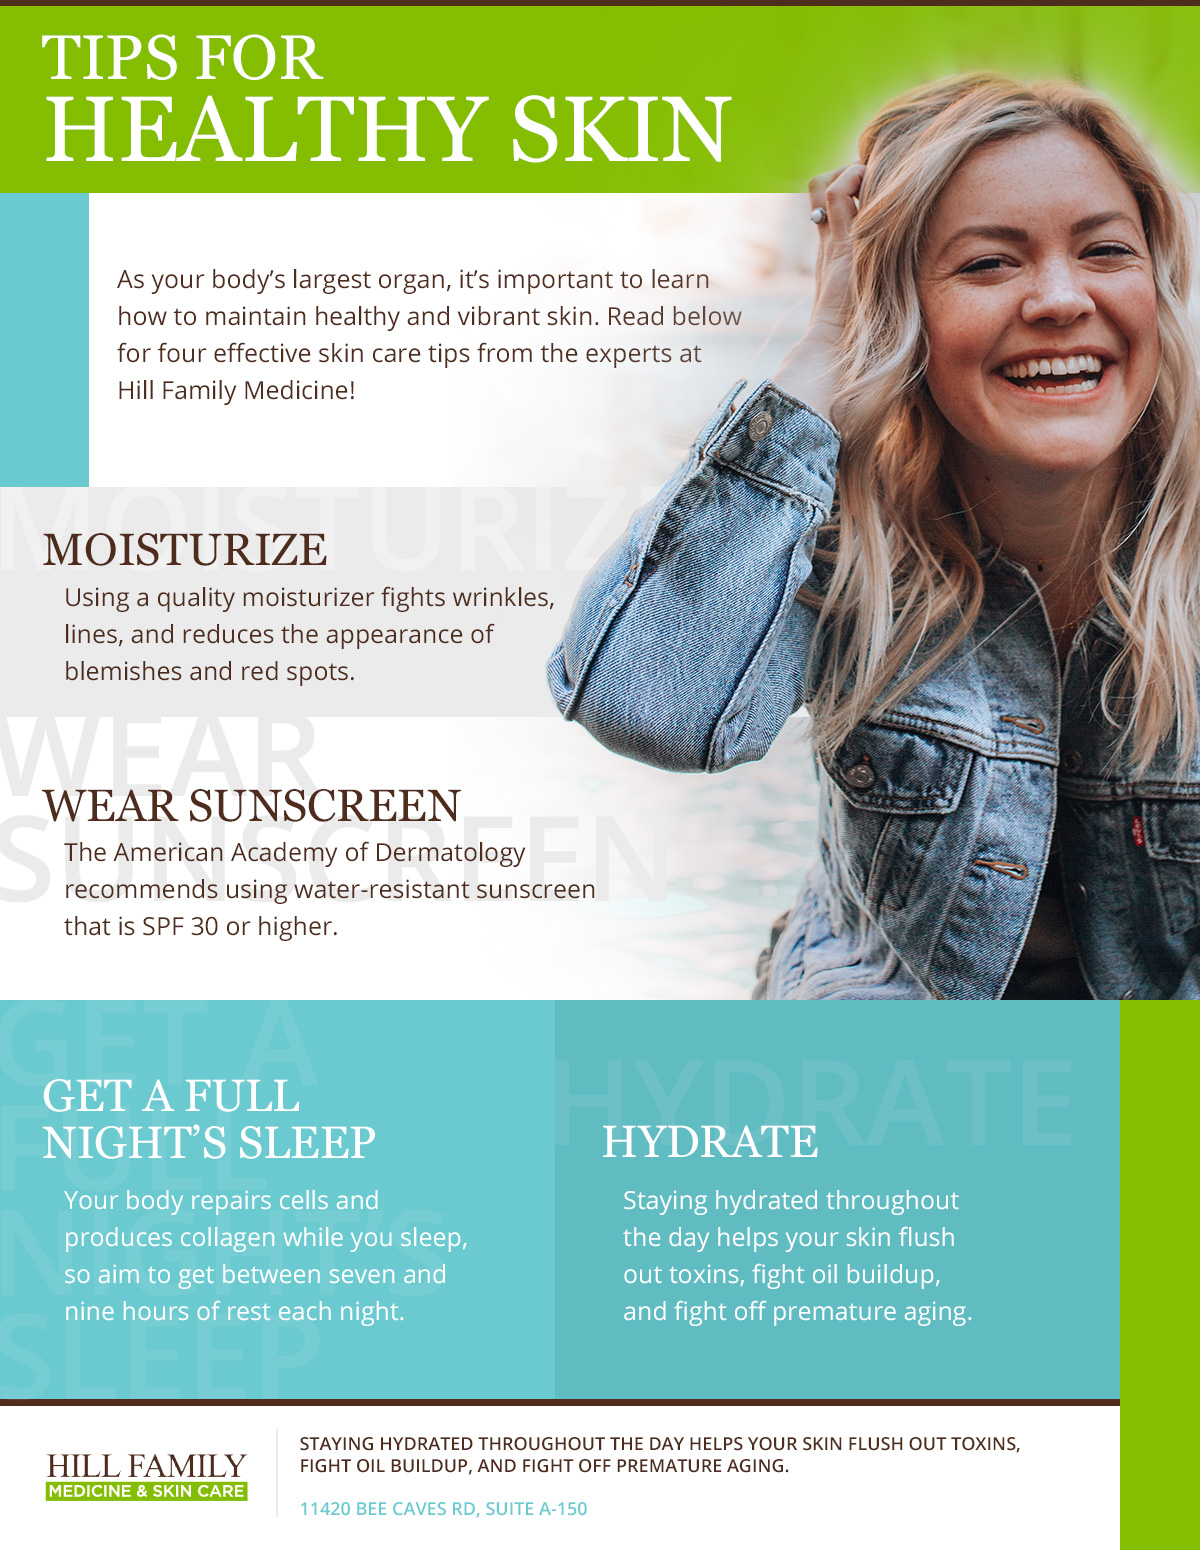 Skin Care Clinic Bee Cave: Tips for Healthy Skin